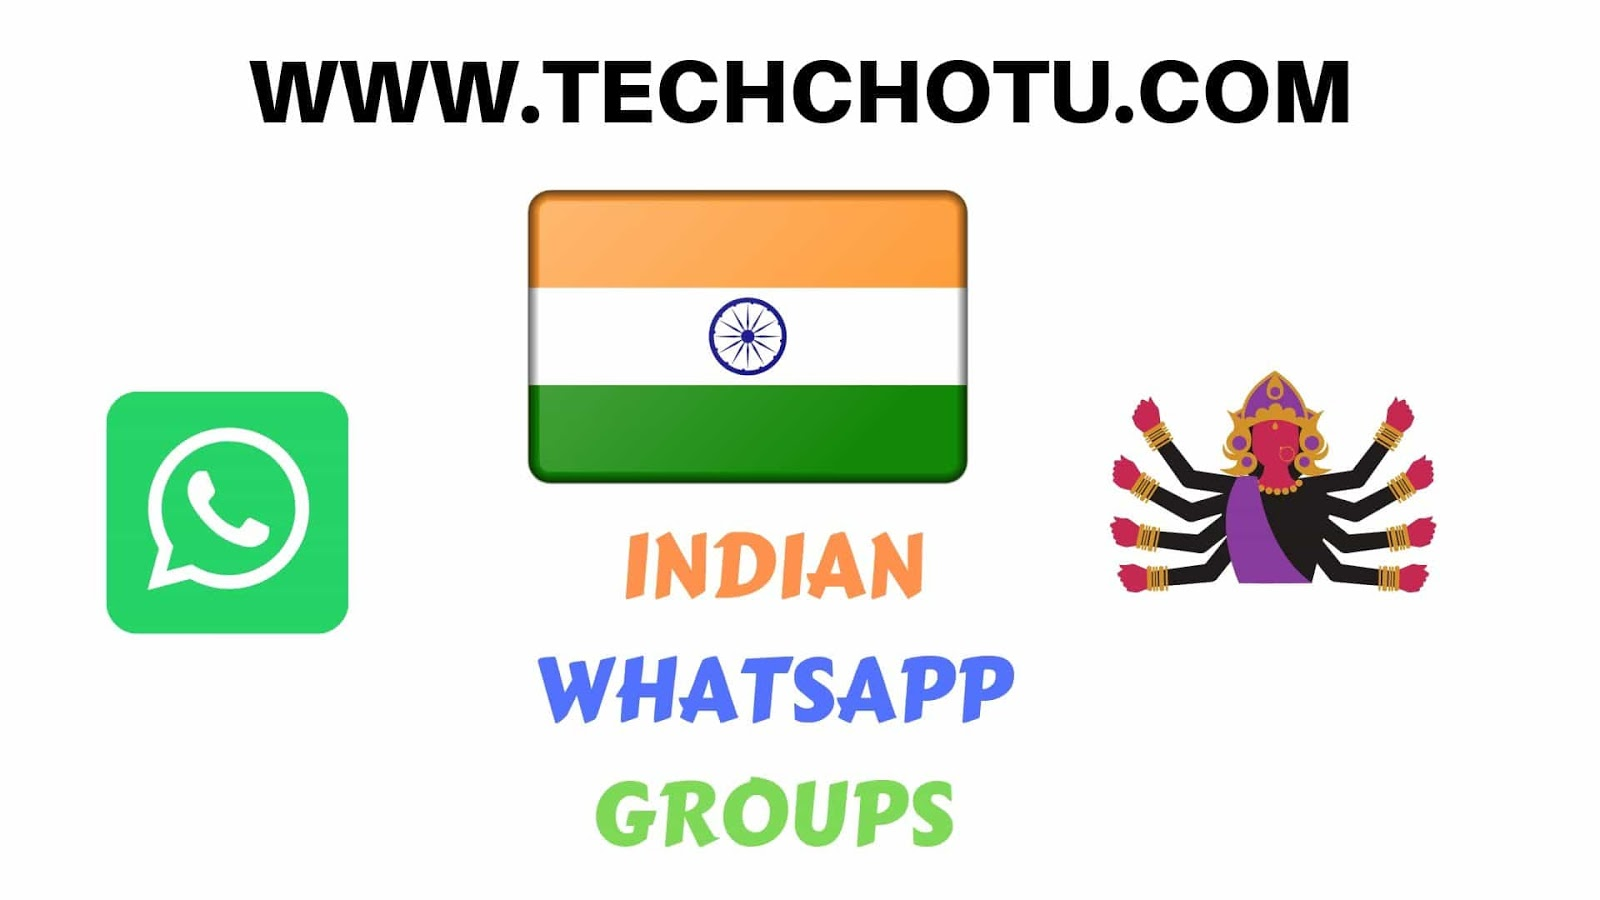 Indian Whatsapp Group Links - Techchotuwhatsapp Group -2691